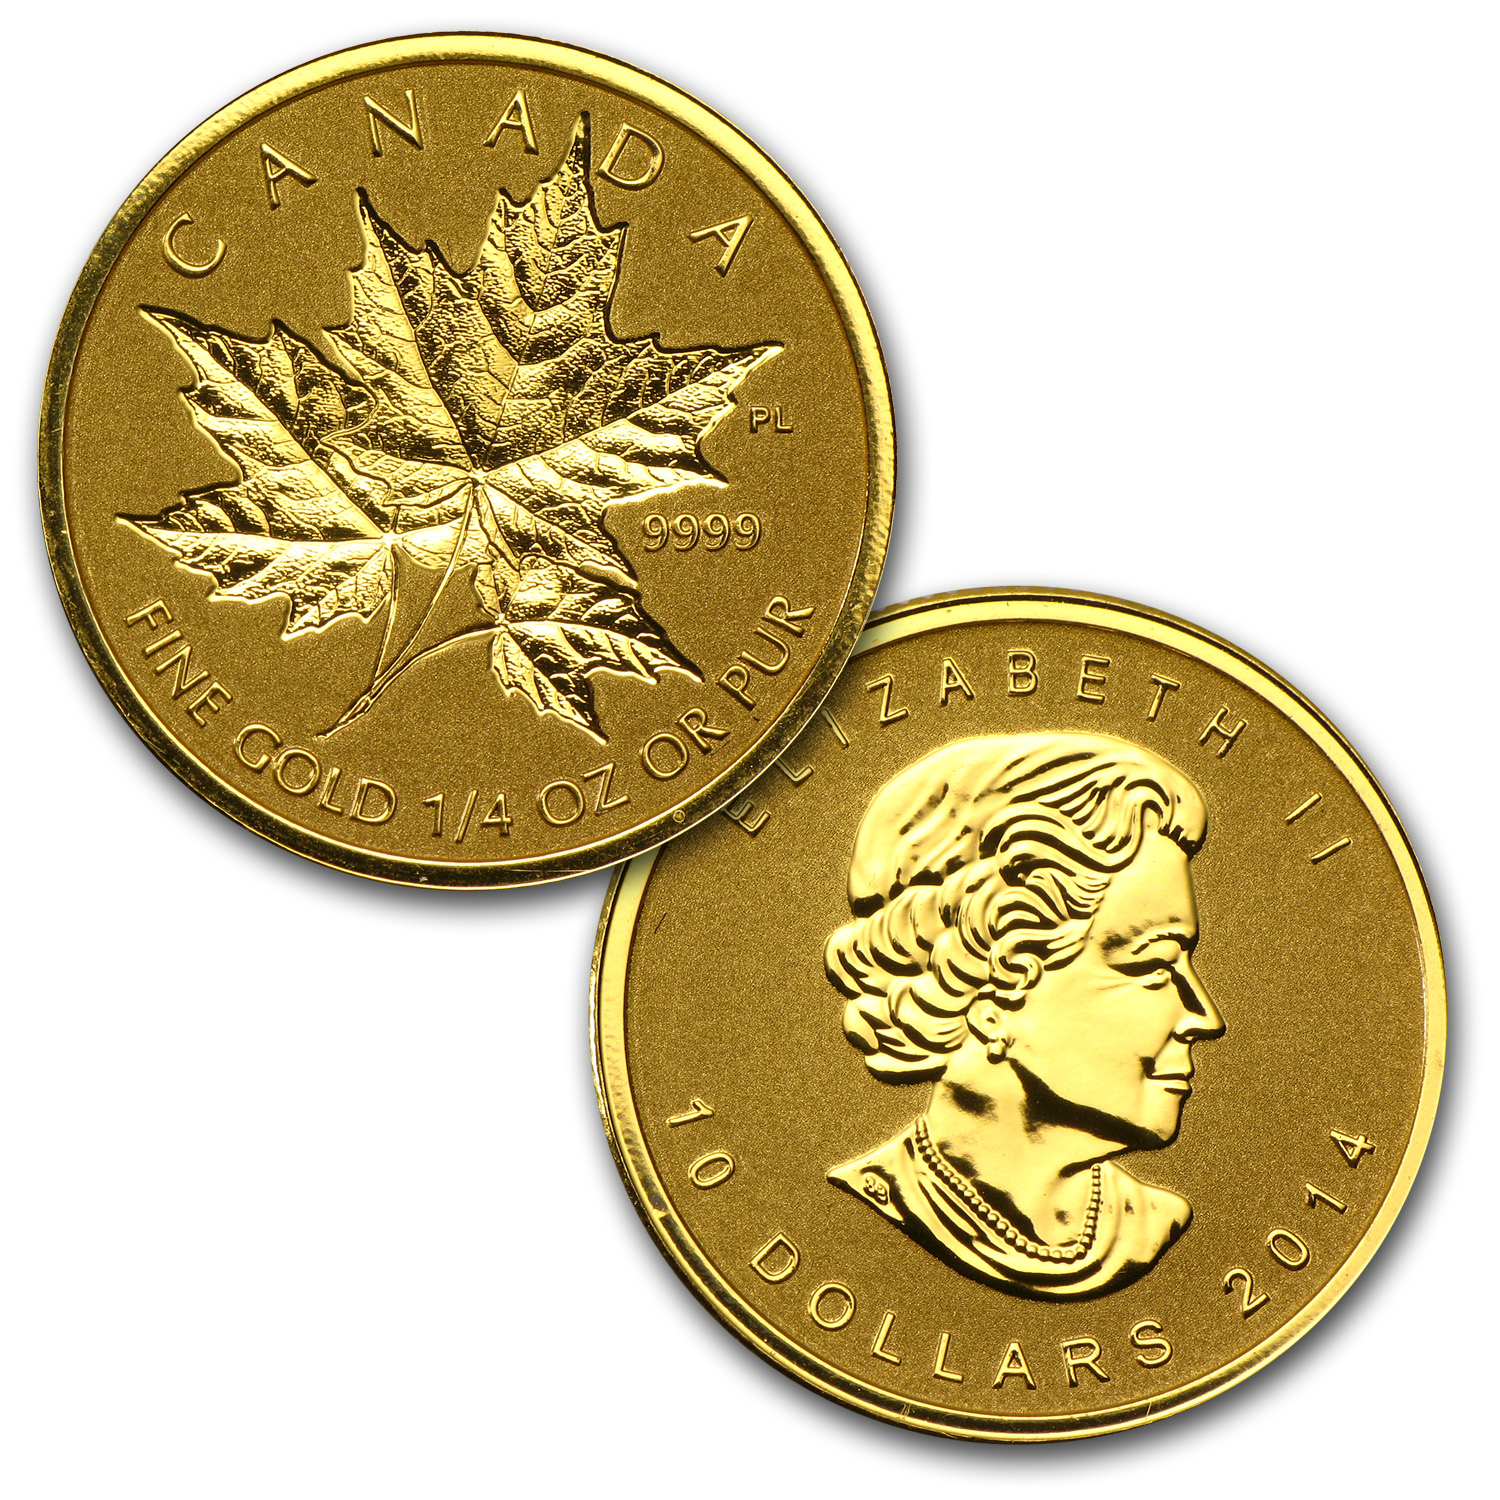 2014 Canada 4-Coin Reverse Proof Gold Maple Leaf Set (1.4 oz)